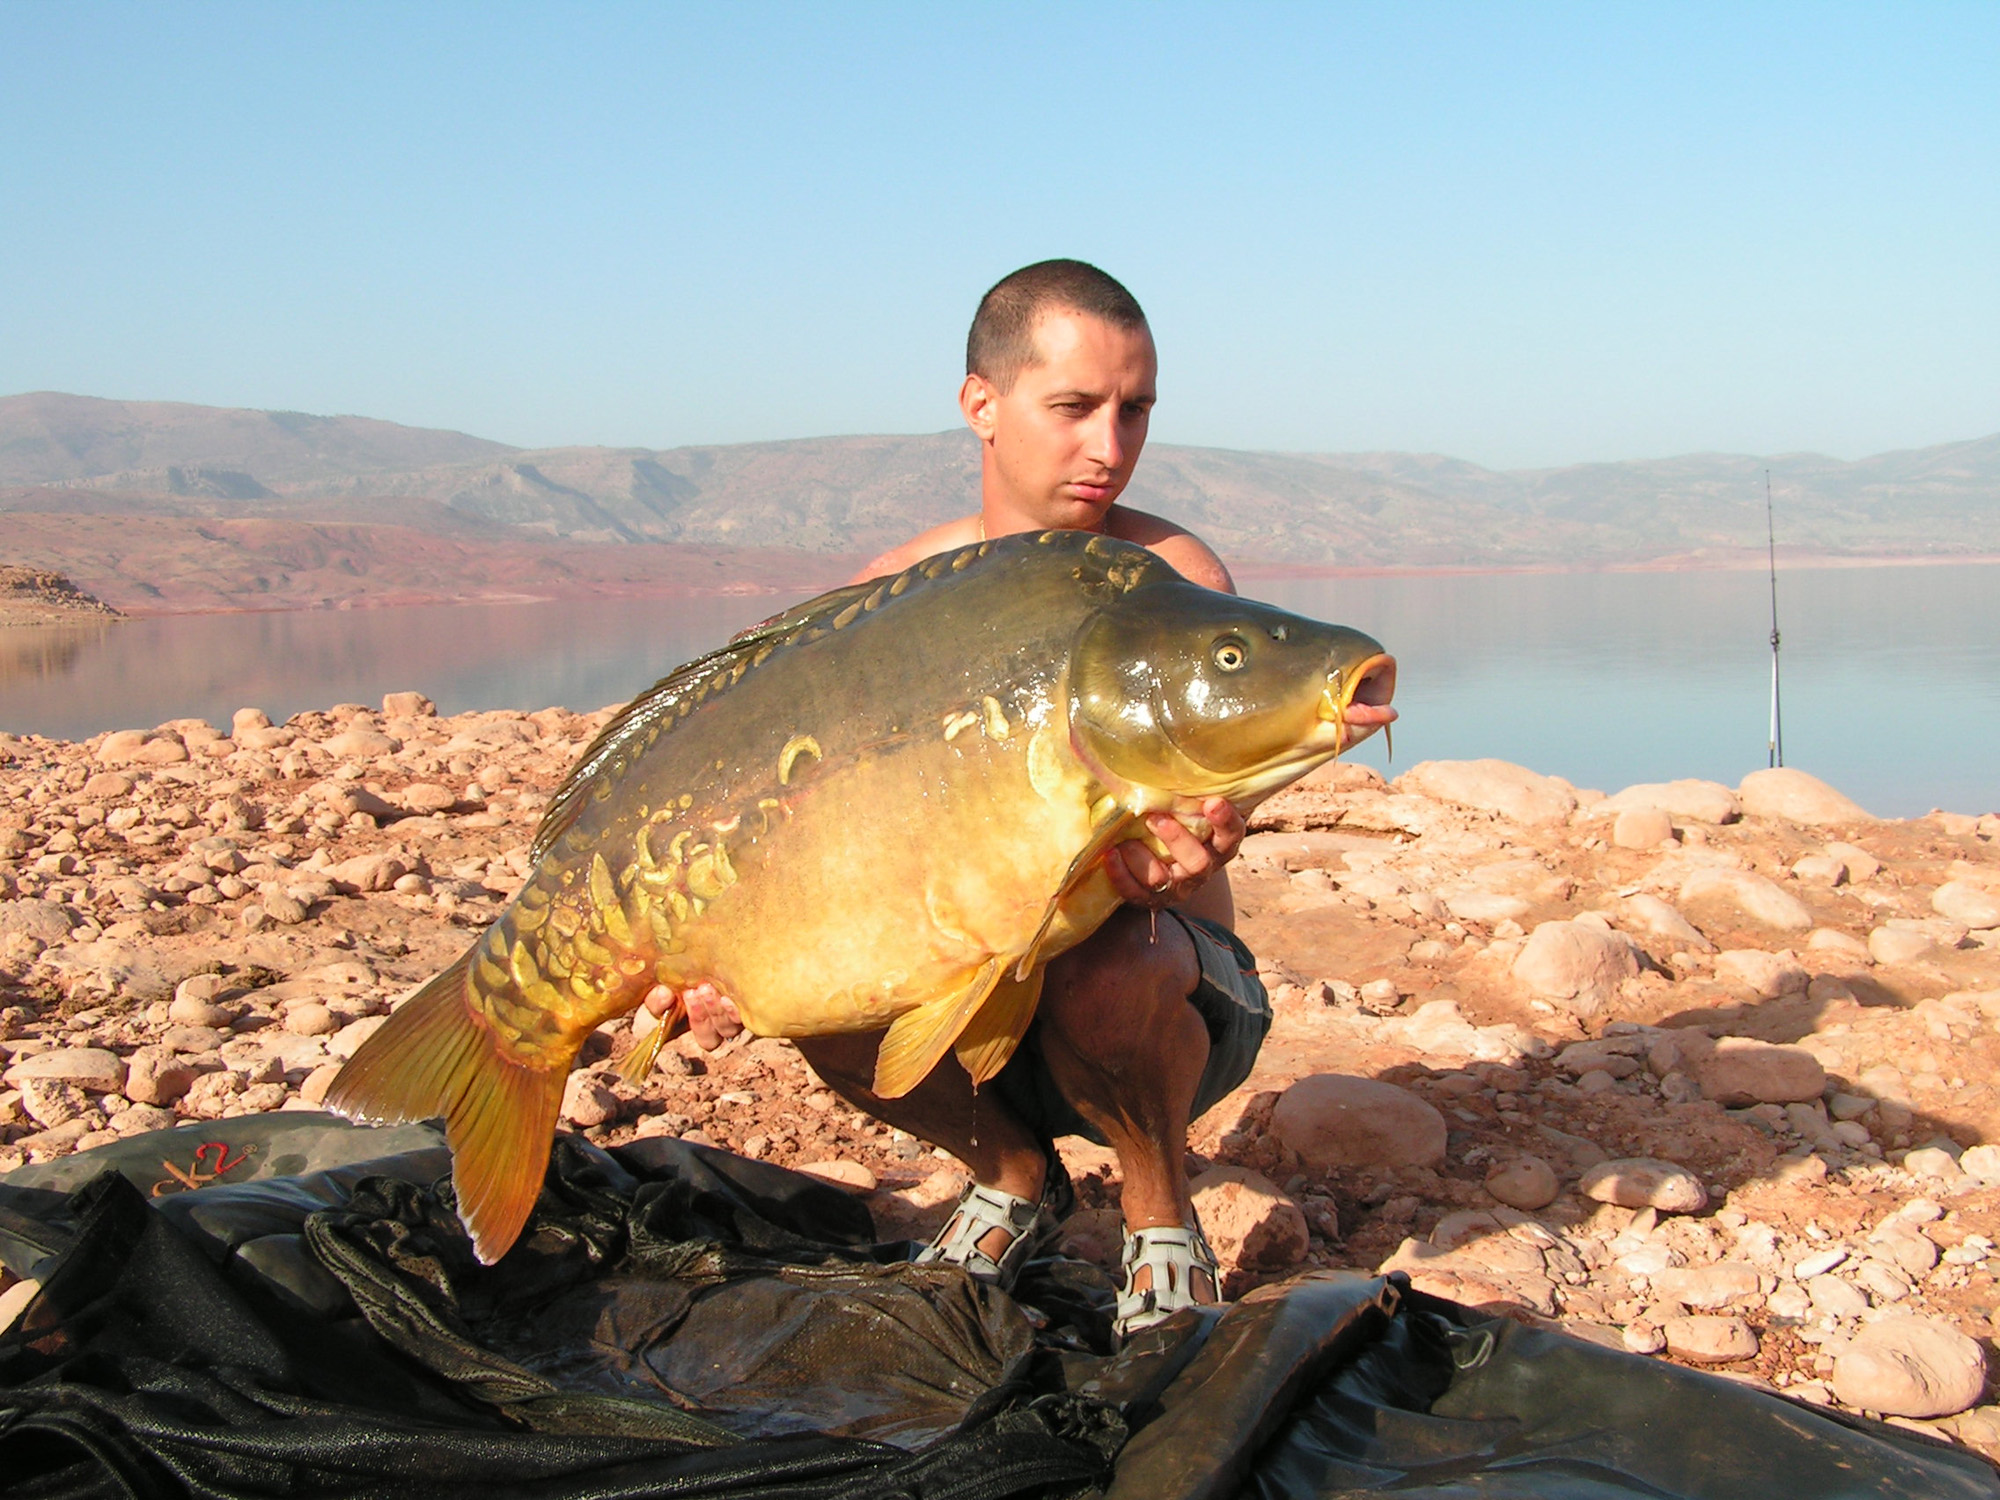 http://starbaits.com/fichiers/images/team/gallery/COLLET_Jerome/1 Jérôme Collet.JPG